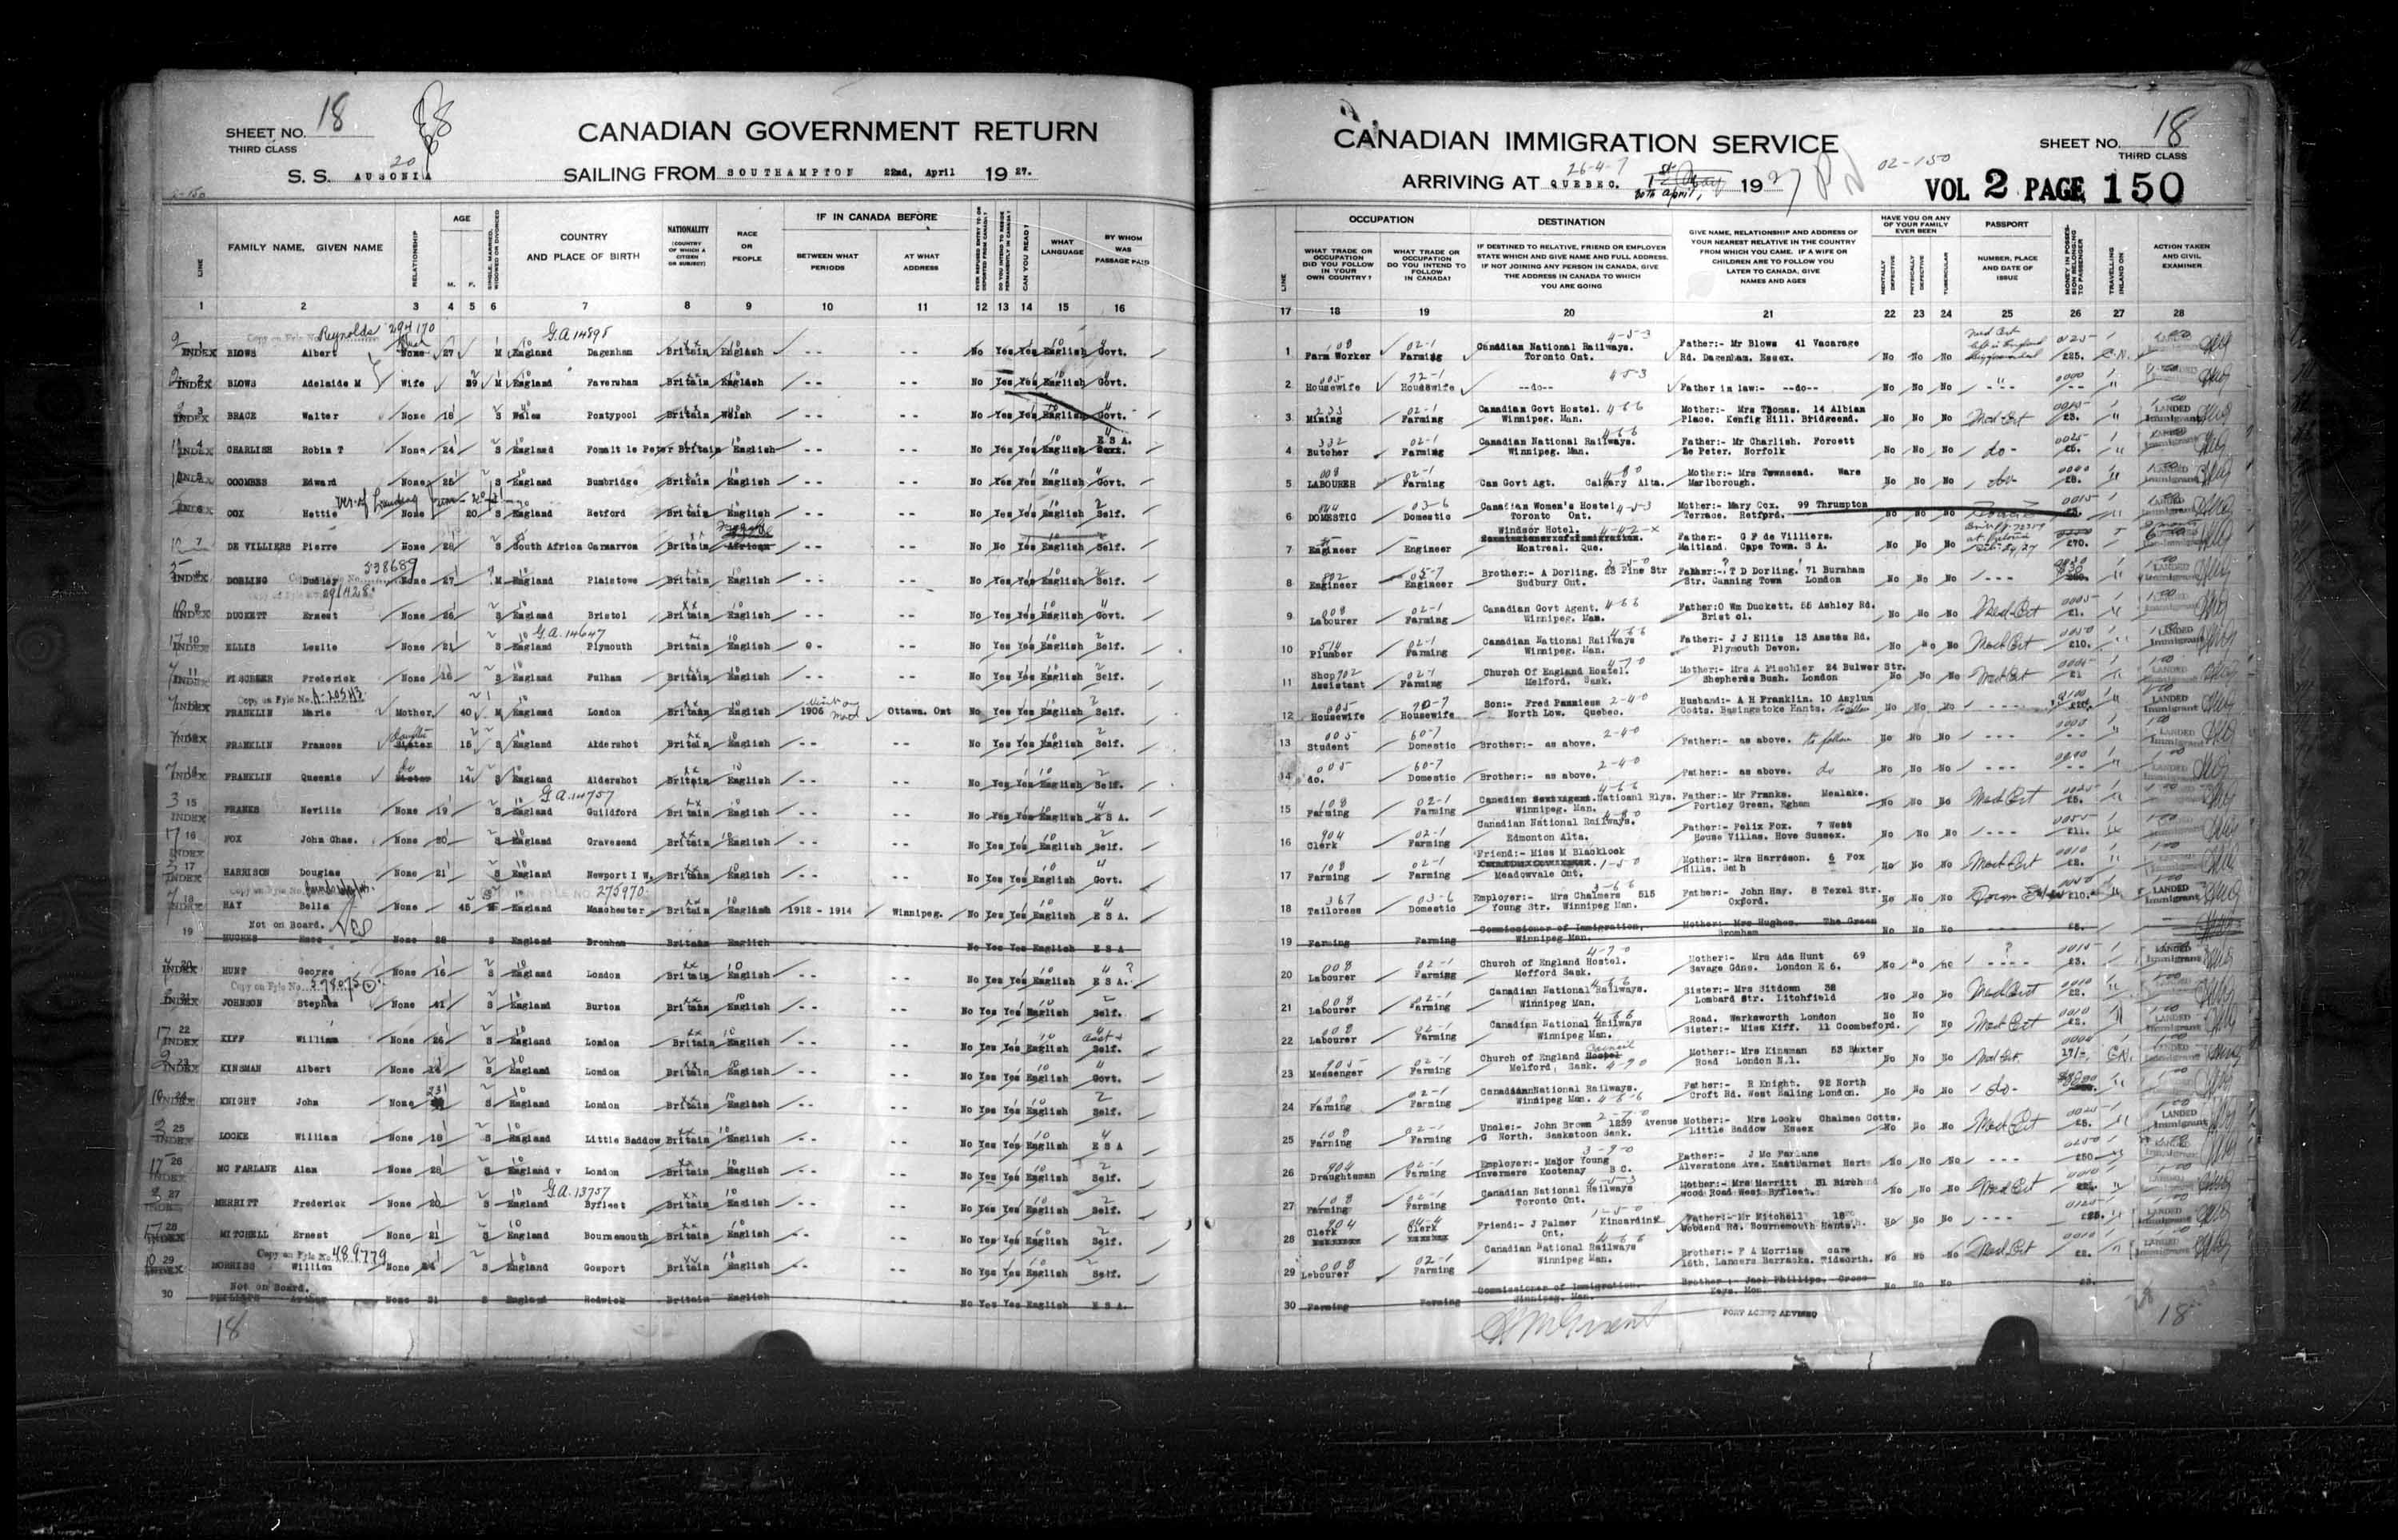 Title: Passenger Lists: Quebec City (1925-1935) - Mikan Number: 134839 - Microform: t-14730